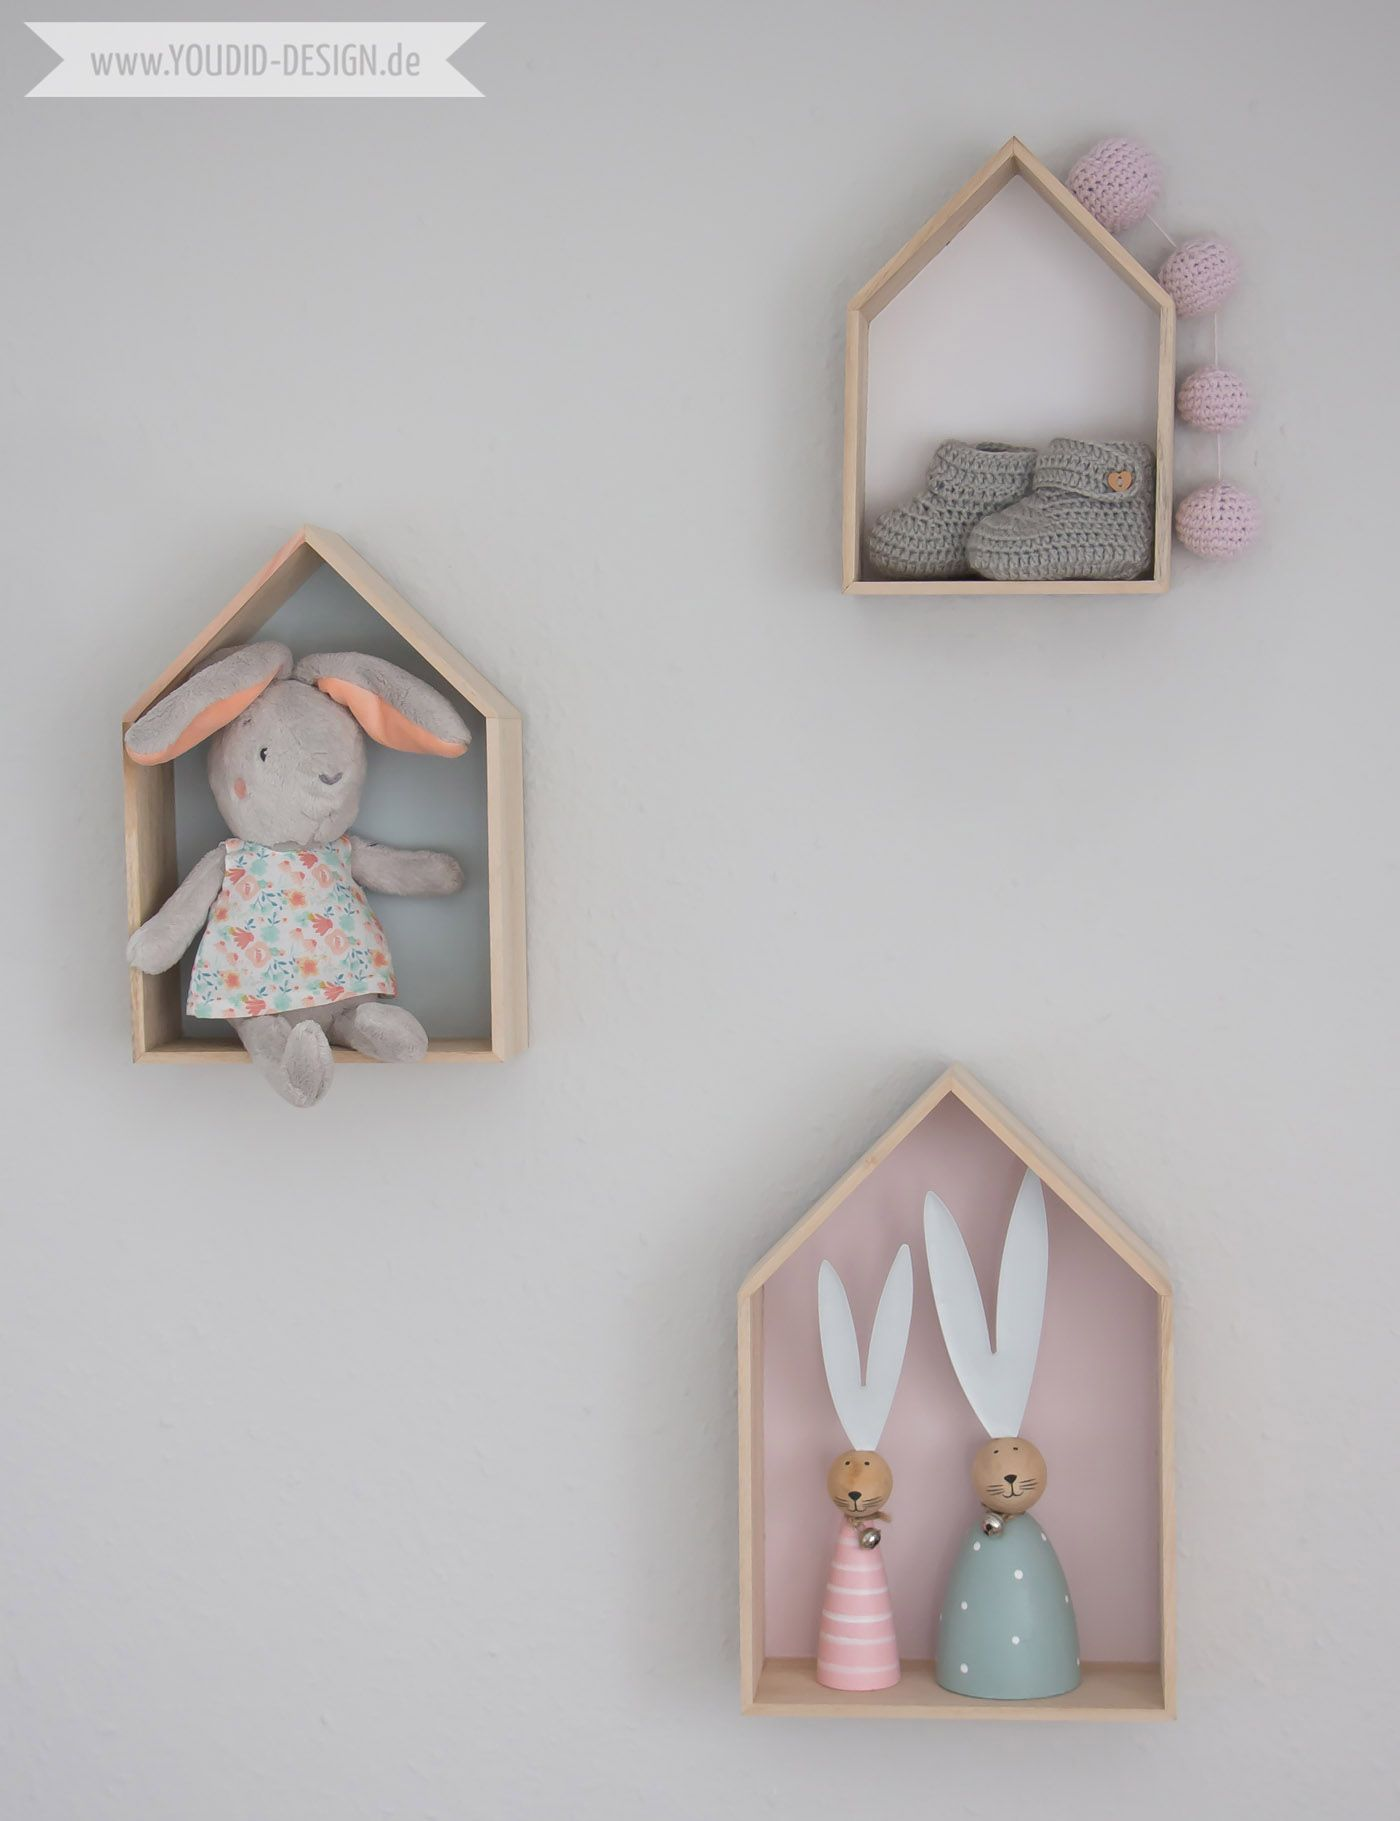 Wunderbar Inspiration For A Scandinavian Nursery Inspirationen Für Ein  Skandinavisches Kinderzimmer In Mint Blush House Shelf Haus Regal IKEA Hack  Scandinavian Deko ...